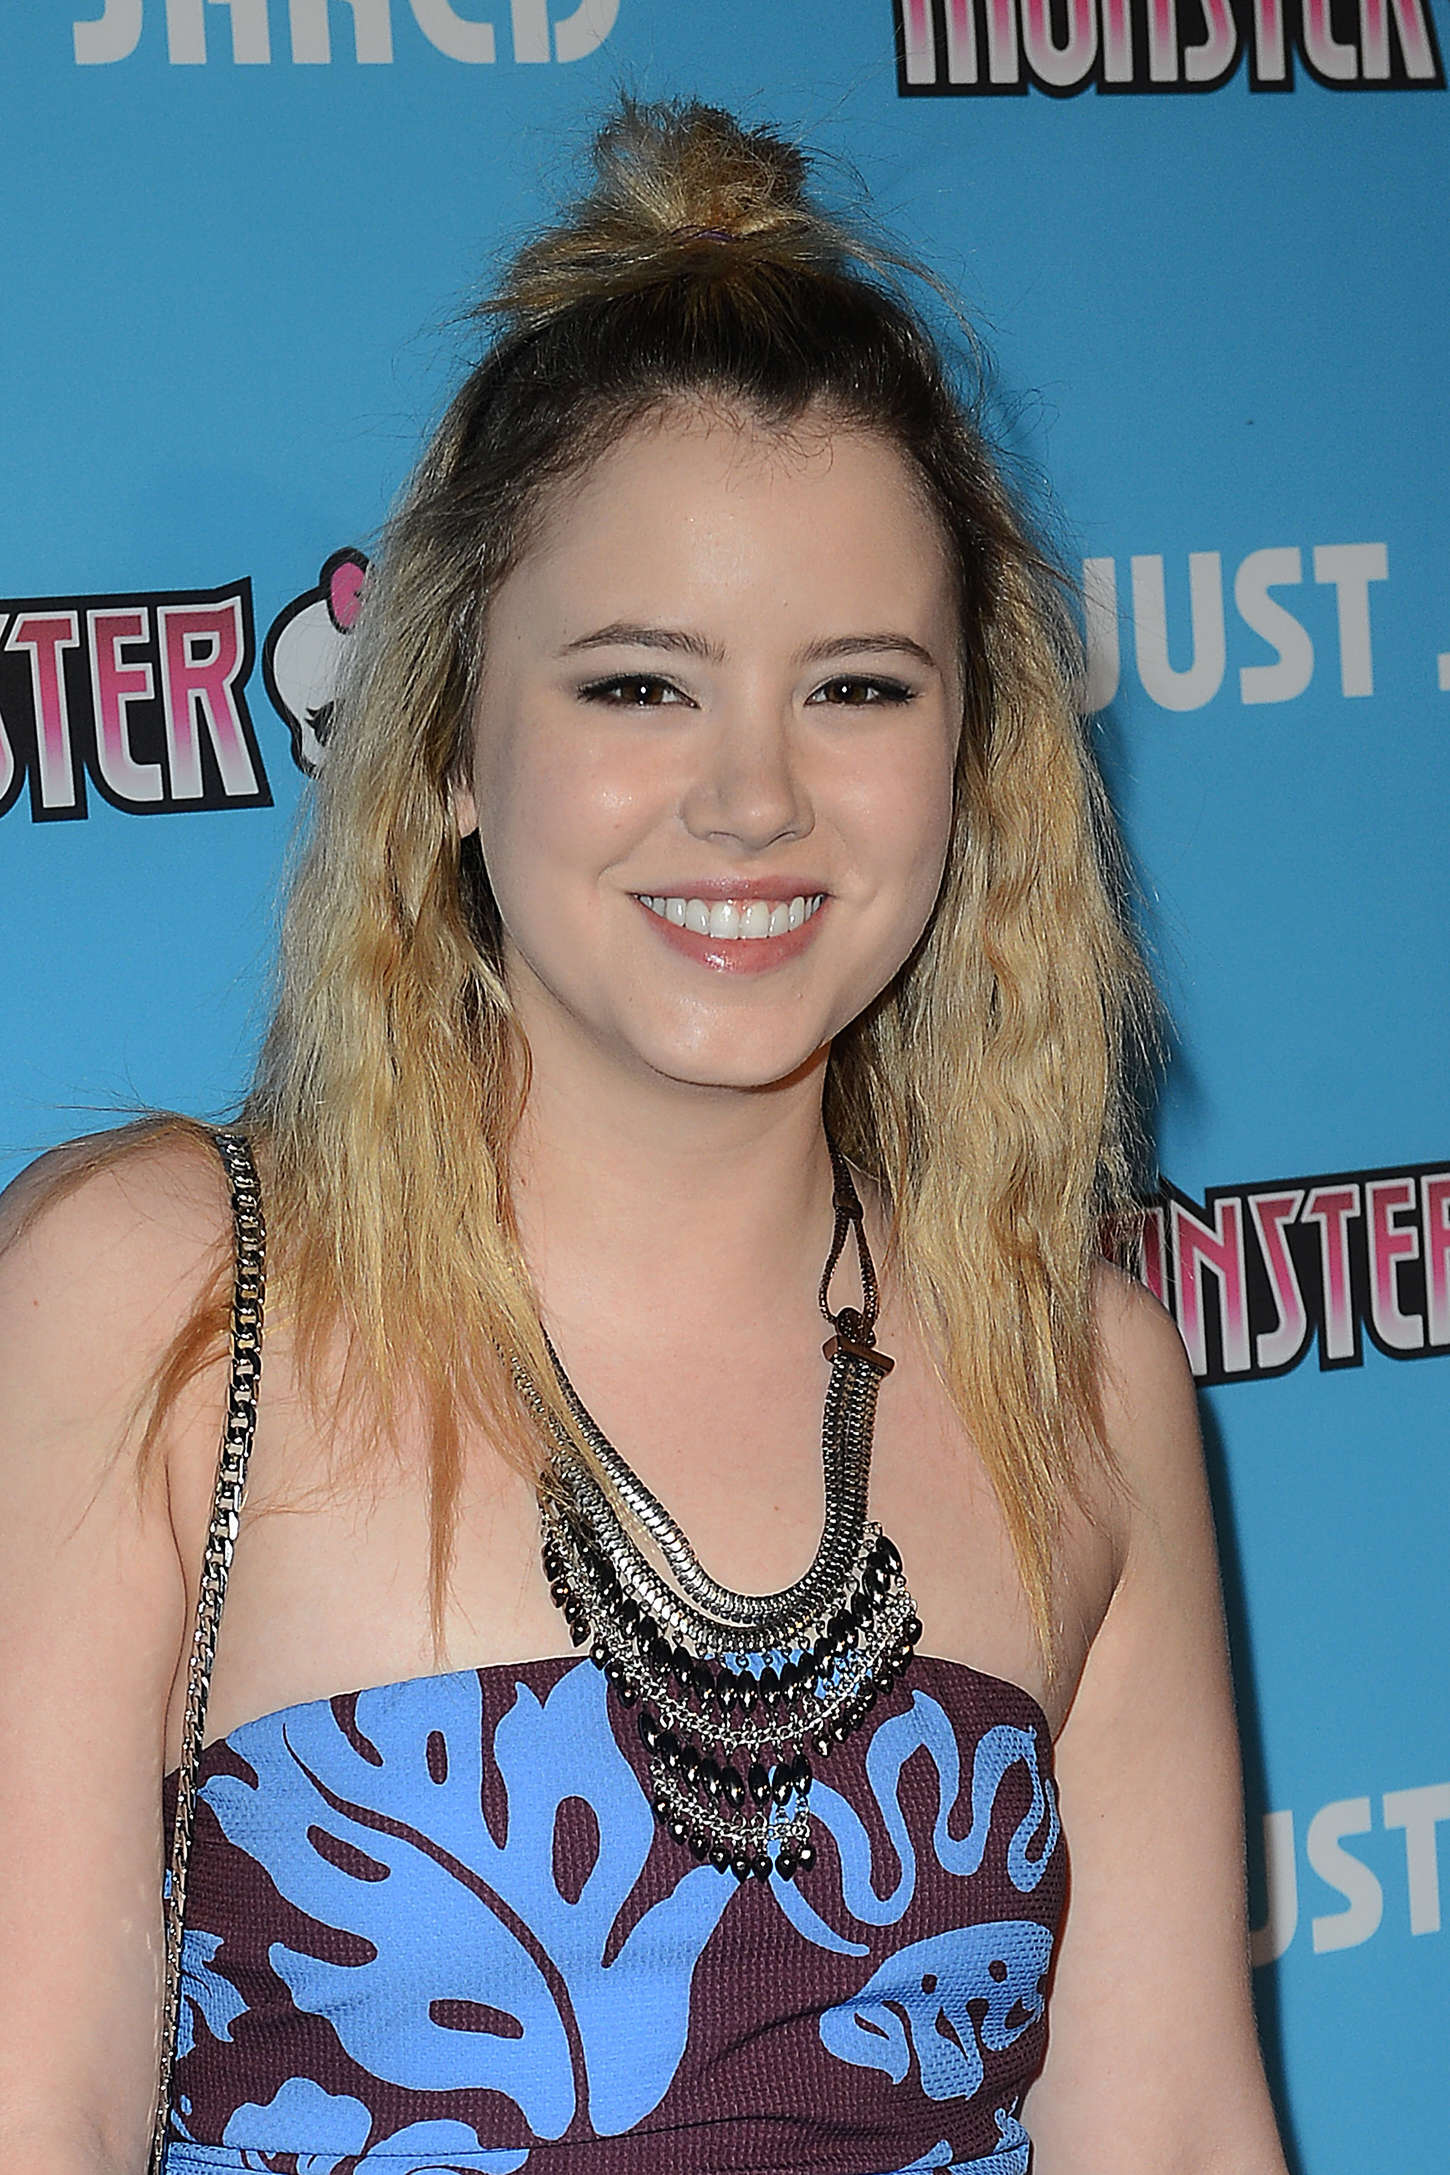 Taylor Spreitler Just Jareds Throwback Thursday Party in Los Angeles